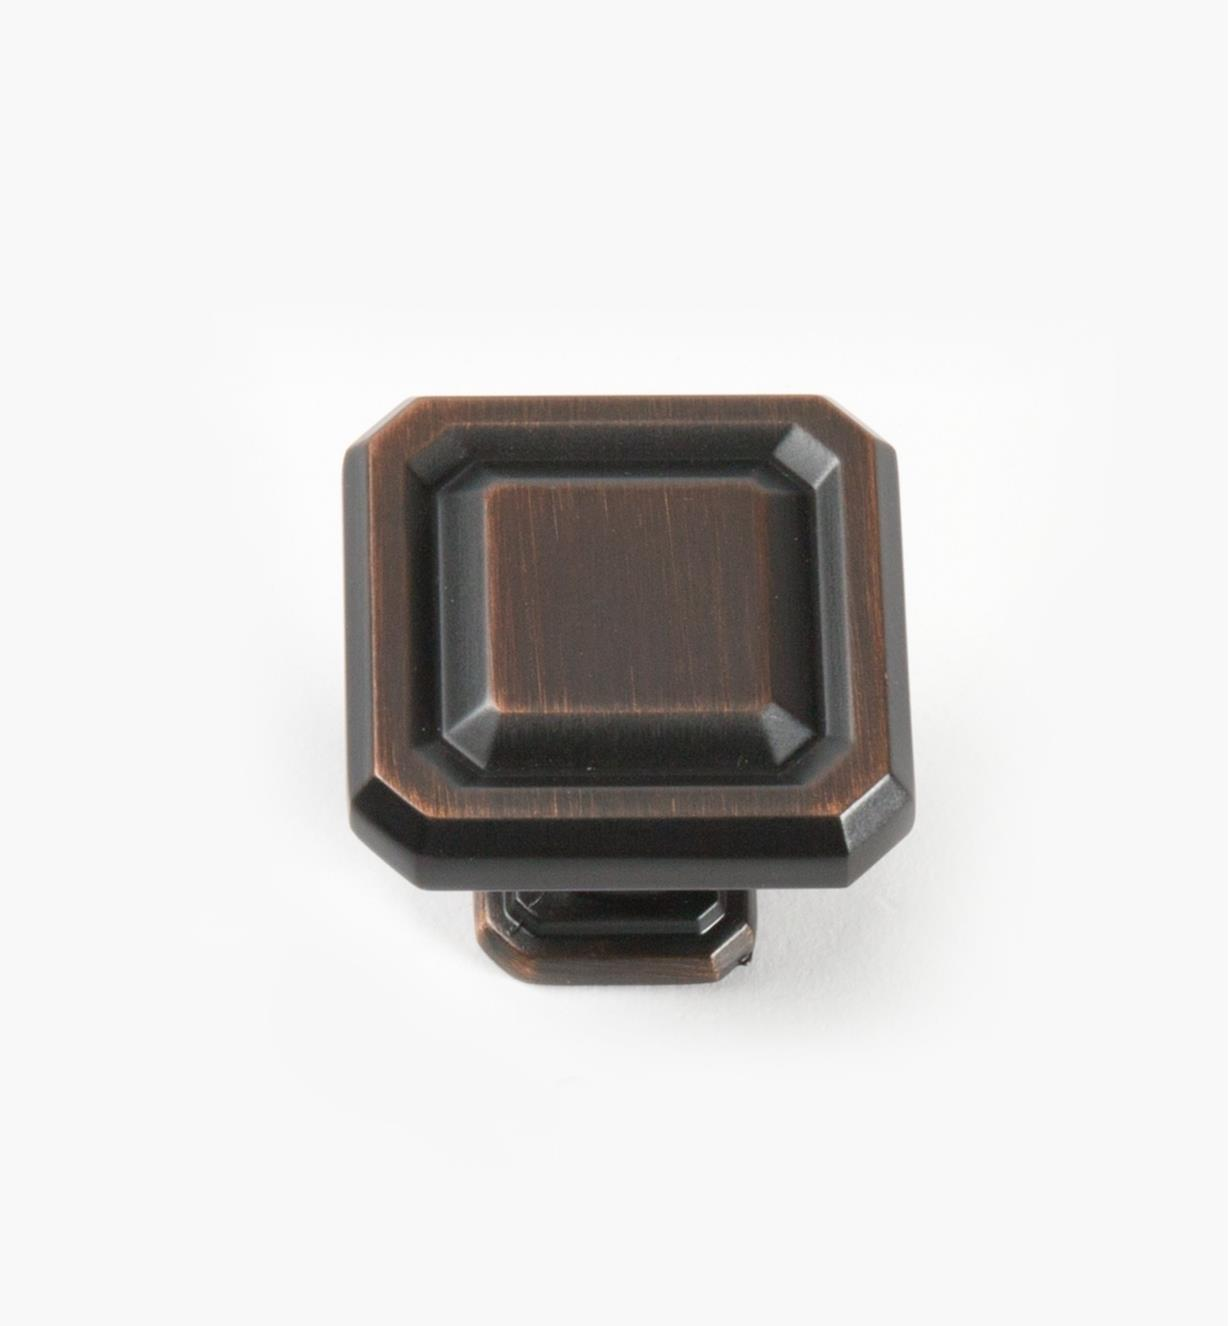 02A1606 - Wells Oil-Rubbed Bronze 38mm x 35mm Knob, each